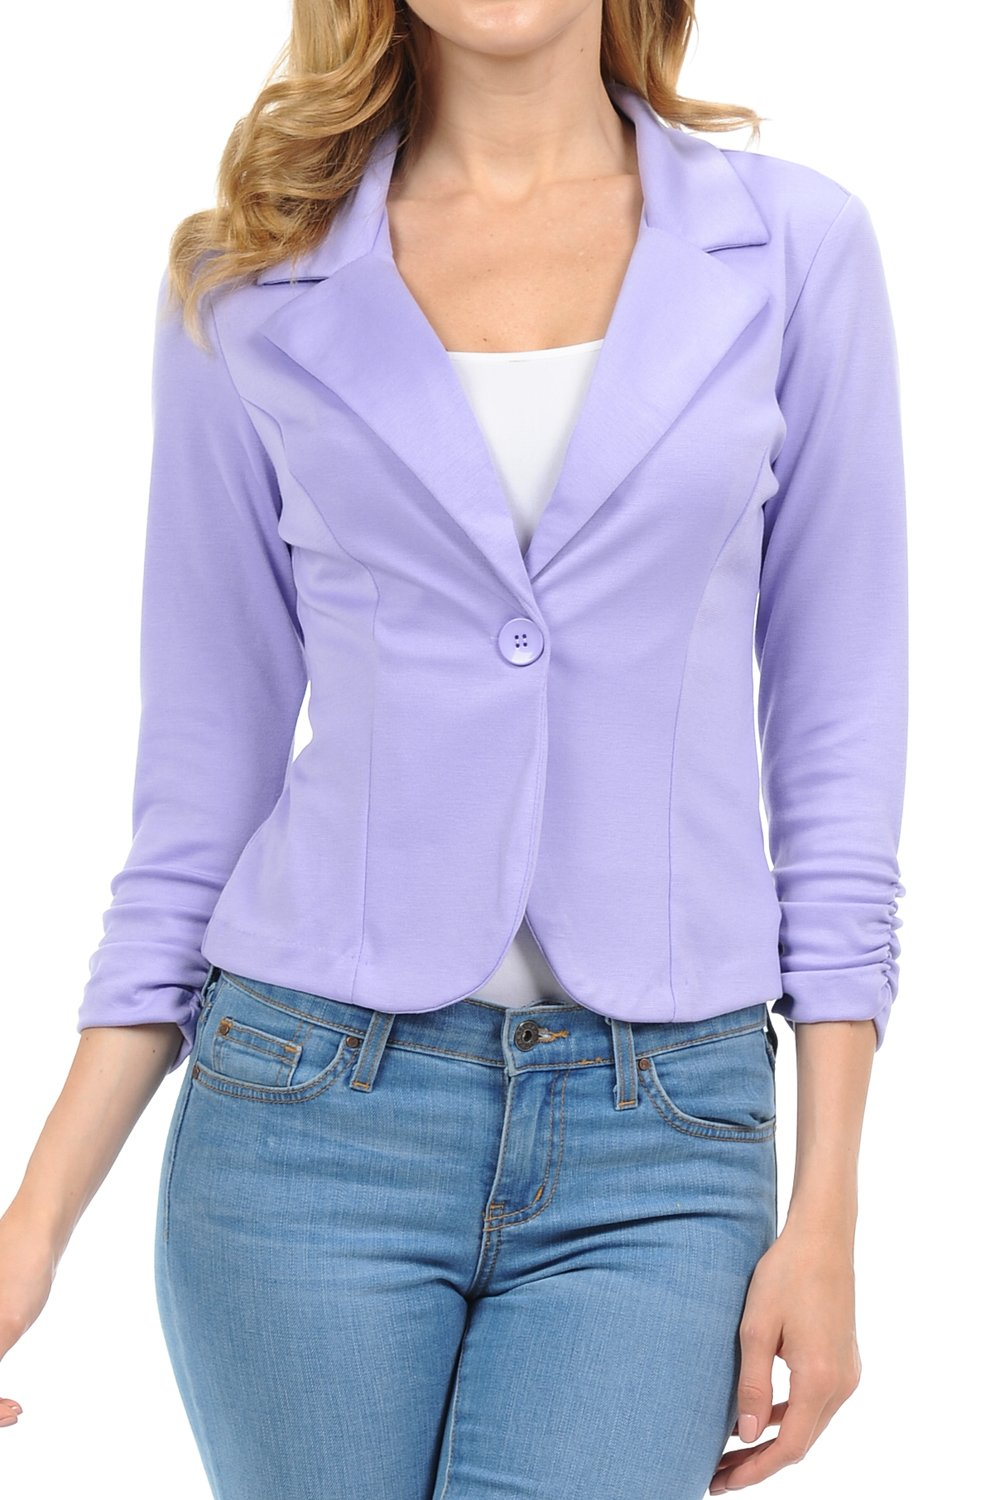 YourStyle Casual Work Solid Color Blazer-S-3XL-MADE in USA (Large, Lavender)